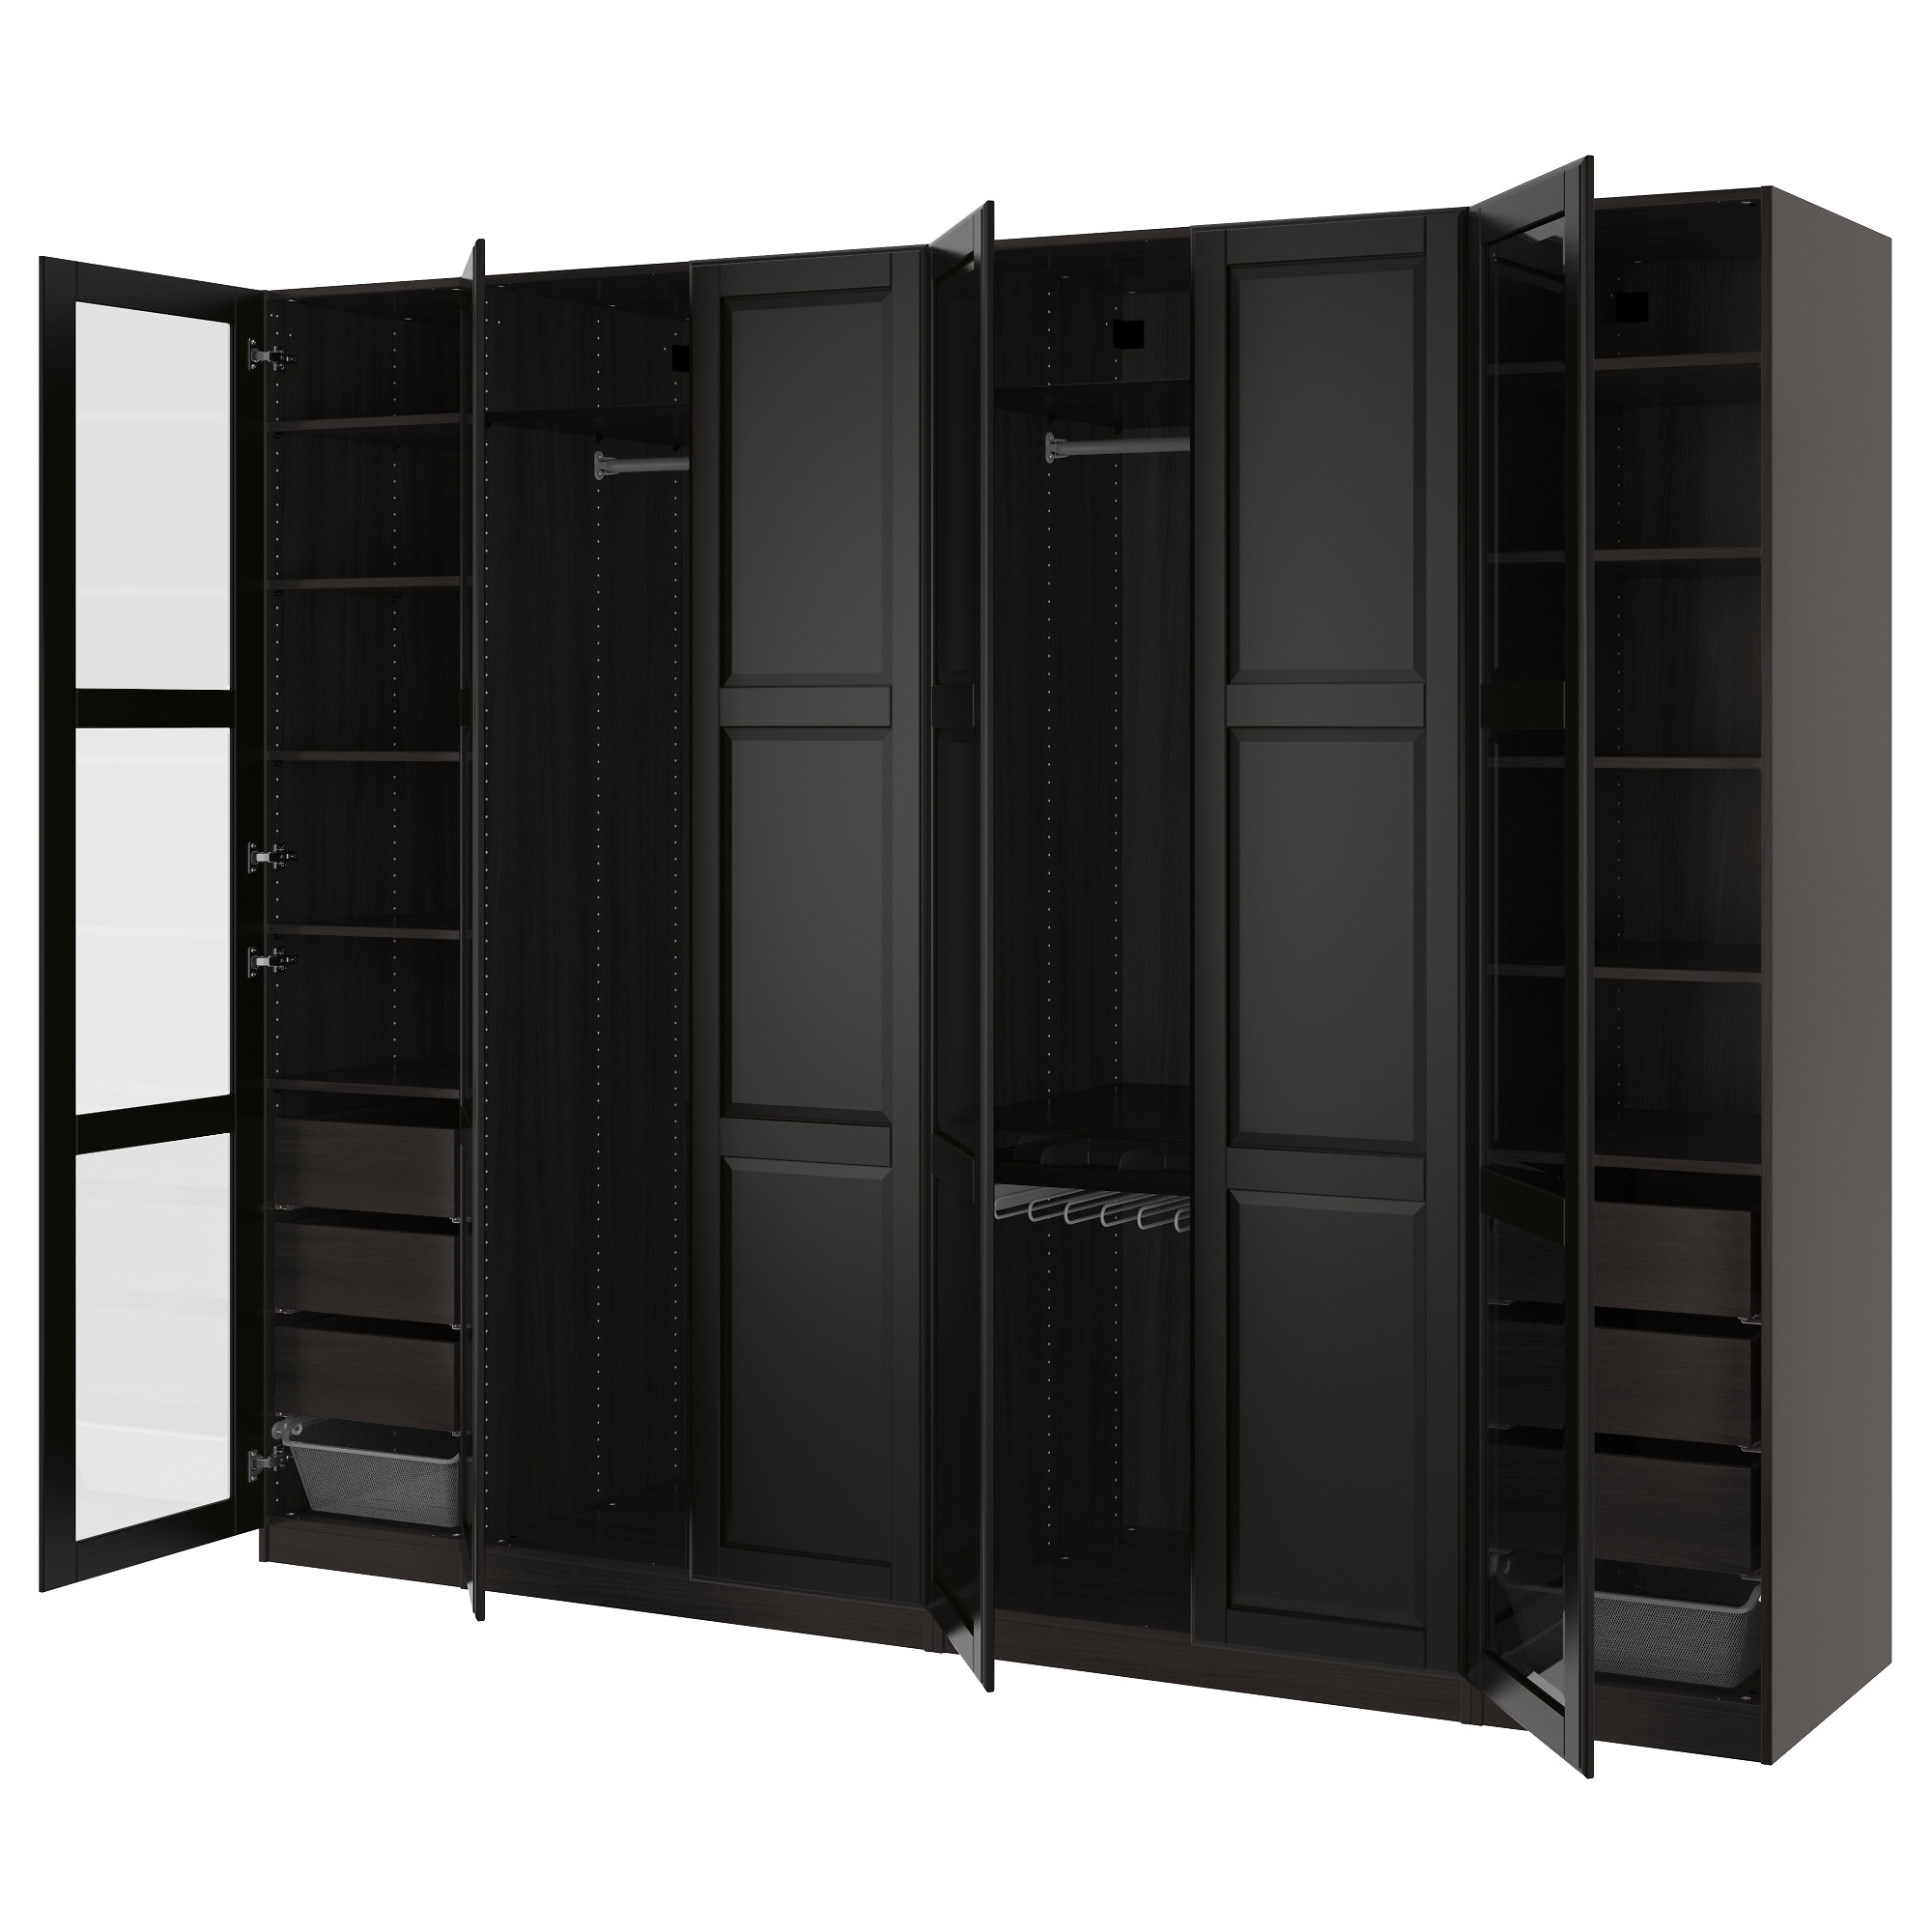 l gant armoire de jardin ikea id es de salon de jardin. Black Bedroom Furniture Sets. Home Design Ideas